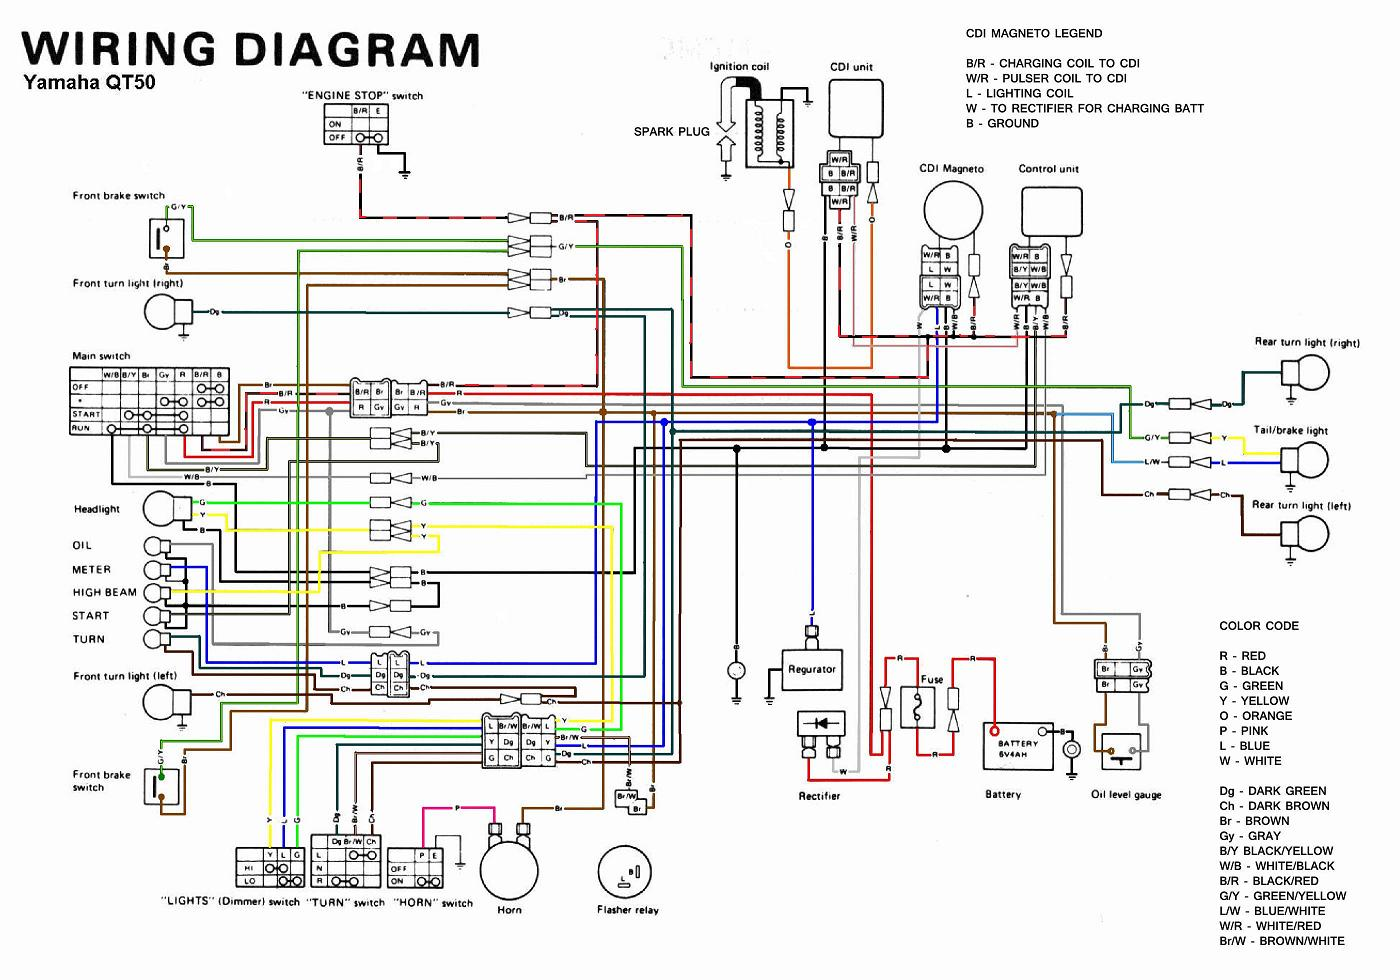 Yamaha QT50 Wiring Diagram qt50 wiring diagram dt250 wiring diagram \u2022 free wiring diagrams 1971 yamaha ct1 175 wiring diagram at crackthecode.co